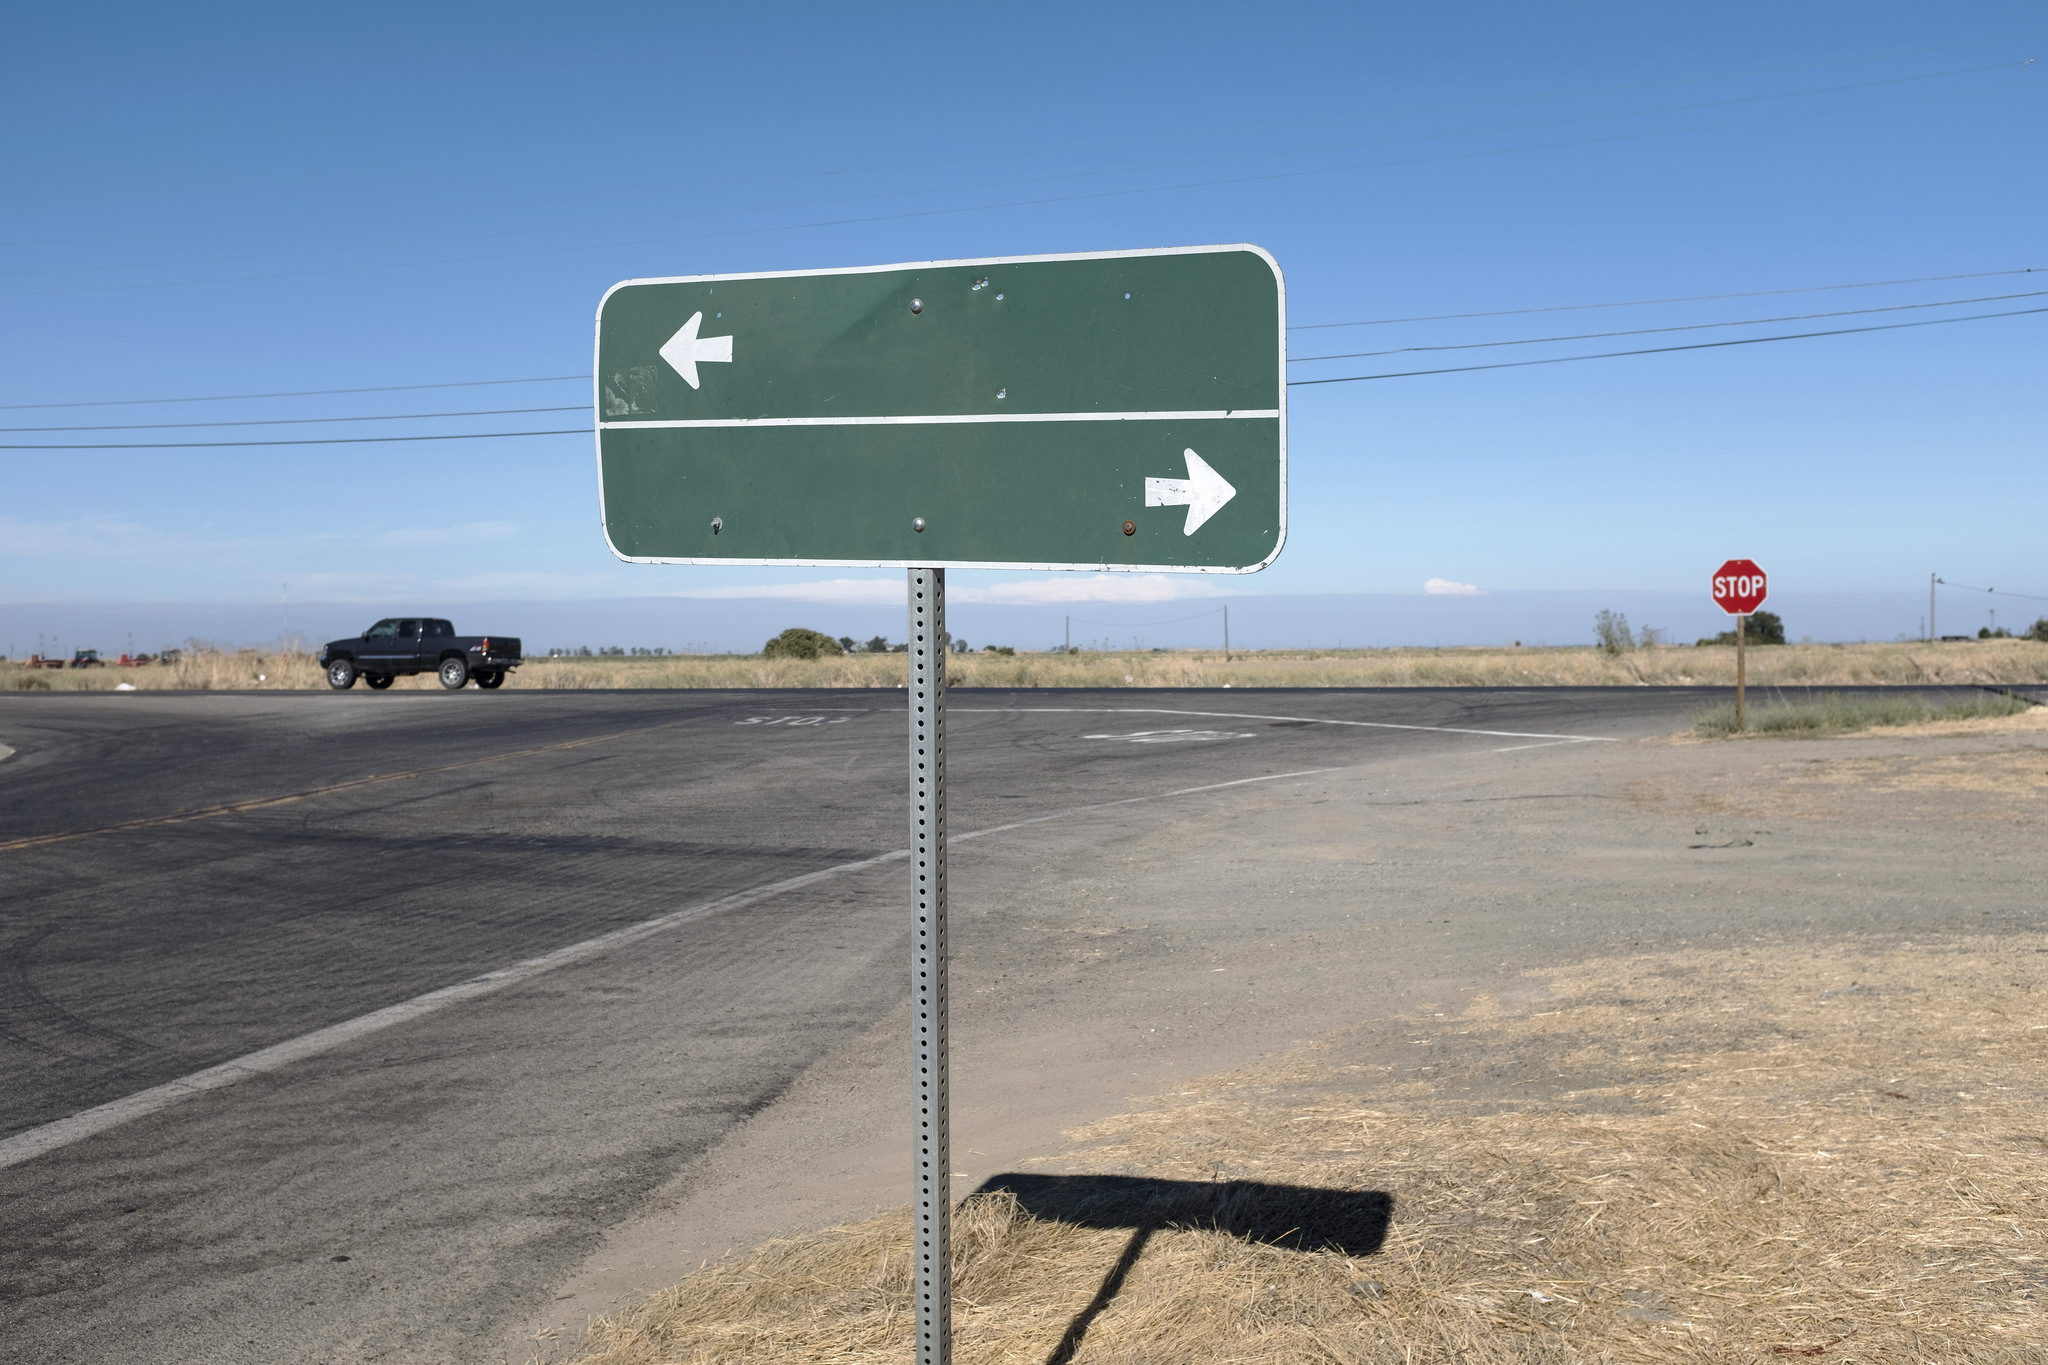 Image of road sign with no words, just two arrows pointing in opposite directions on an empty road.